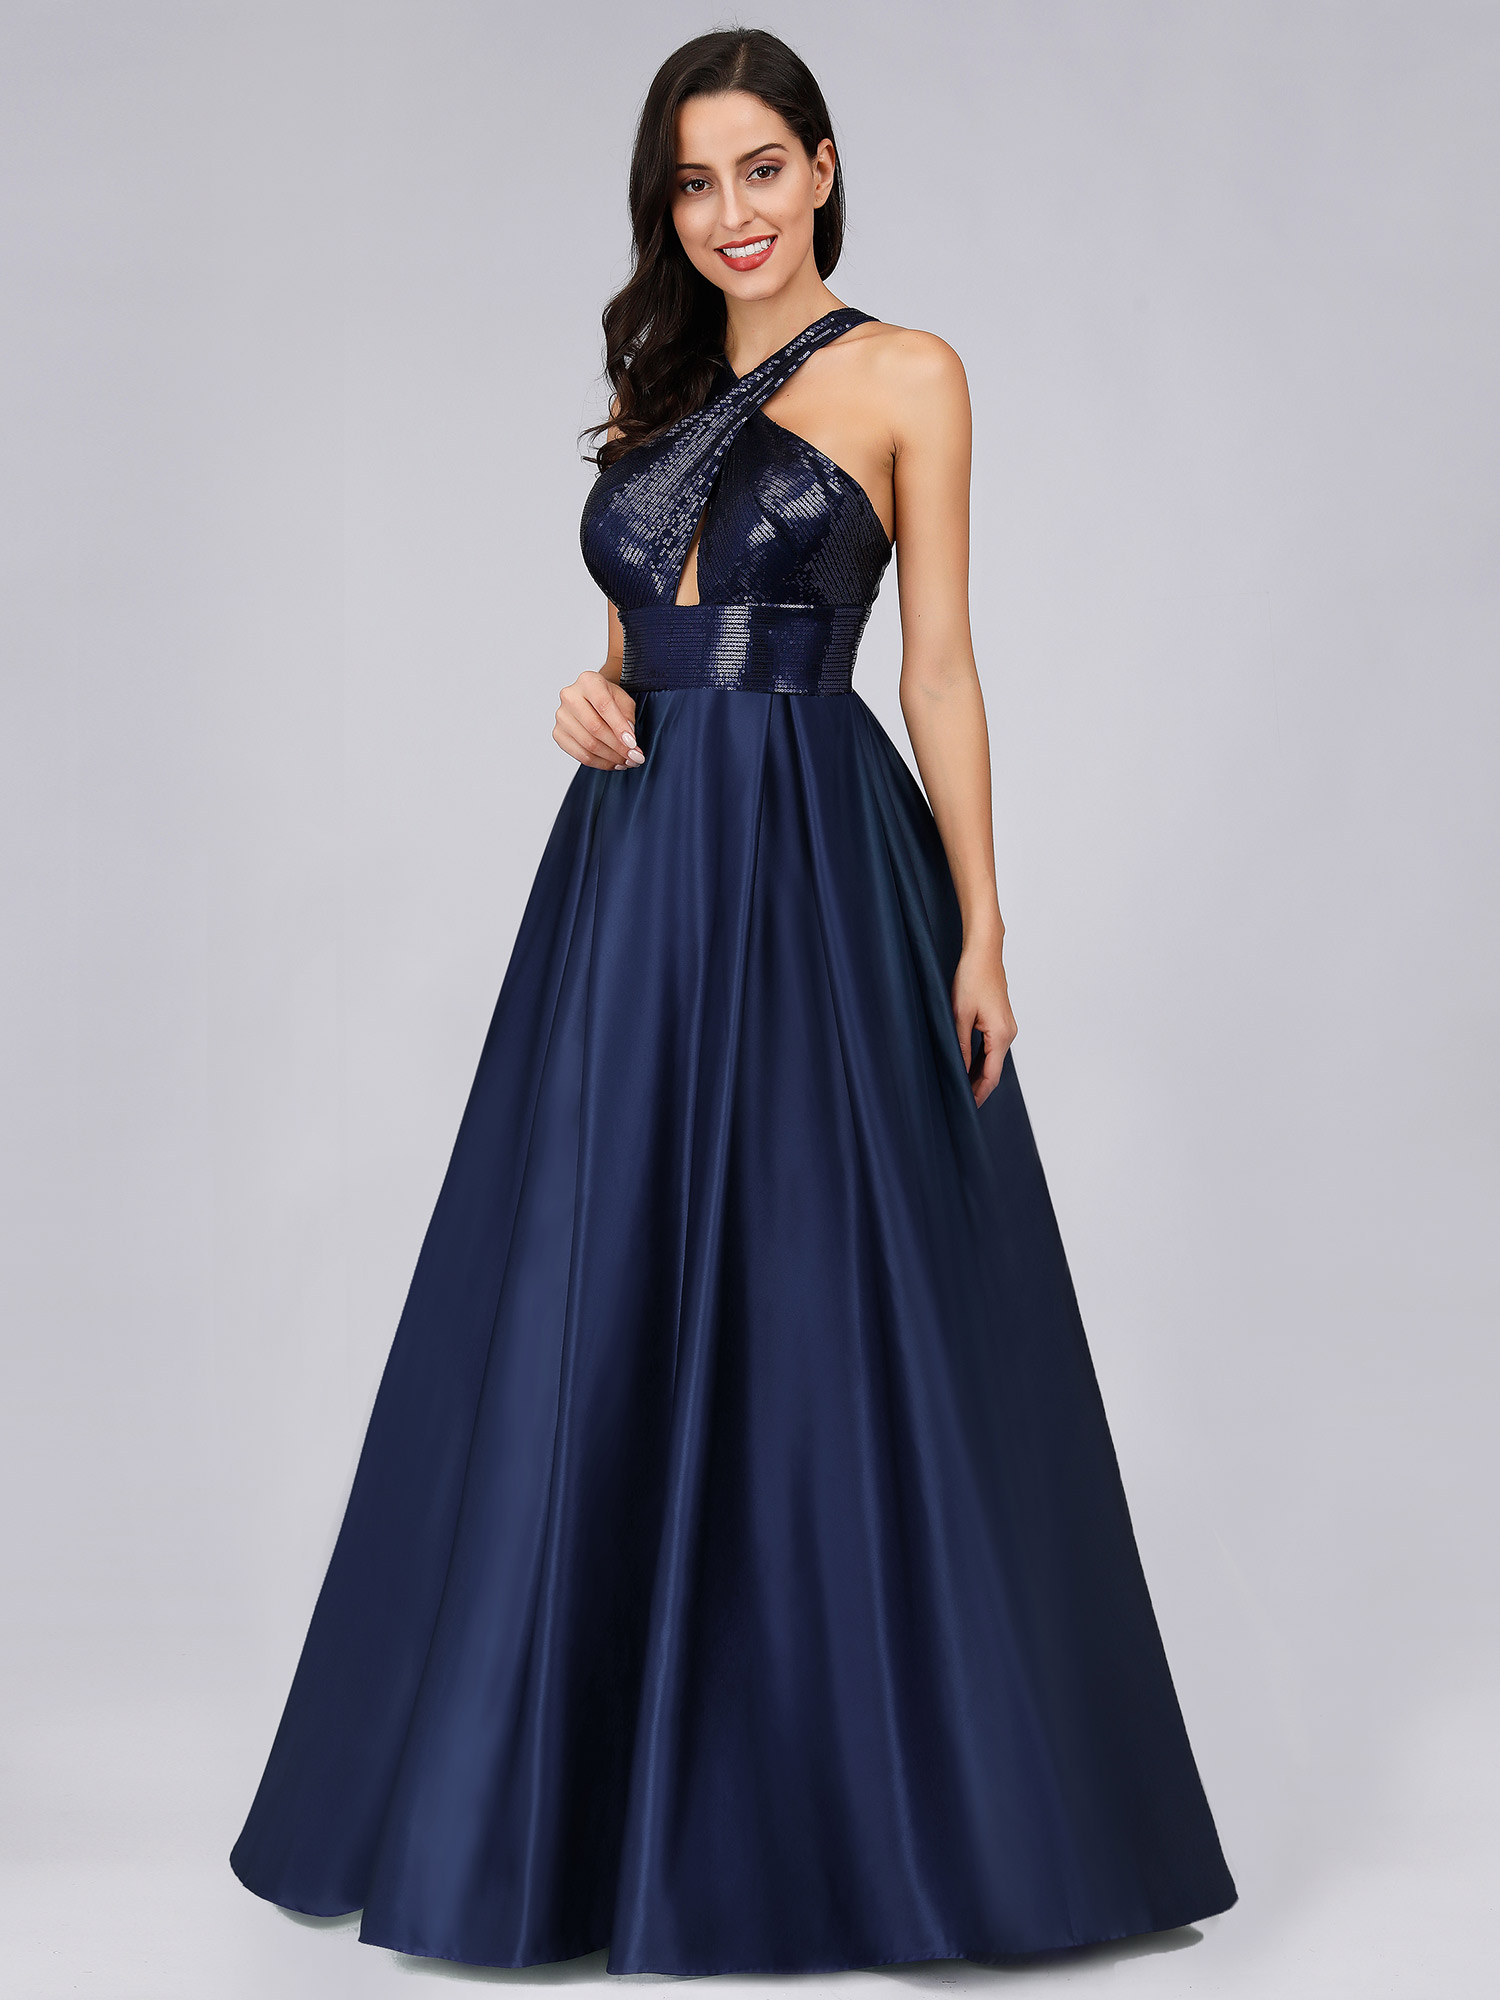 Ever-pretty-US-Long-Navy-Blue-Formal-Prom-Gowns-Evening-Cocktail-Party-Dresses thumbnail 7